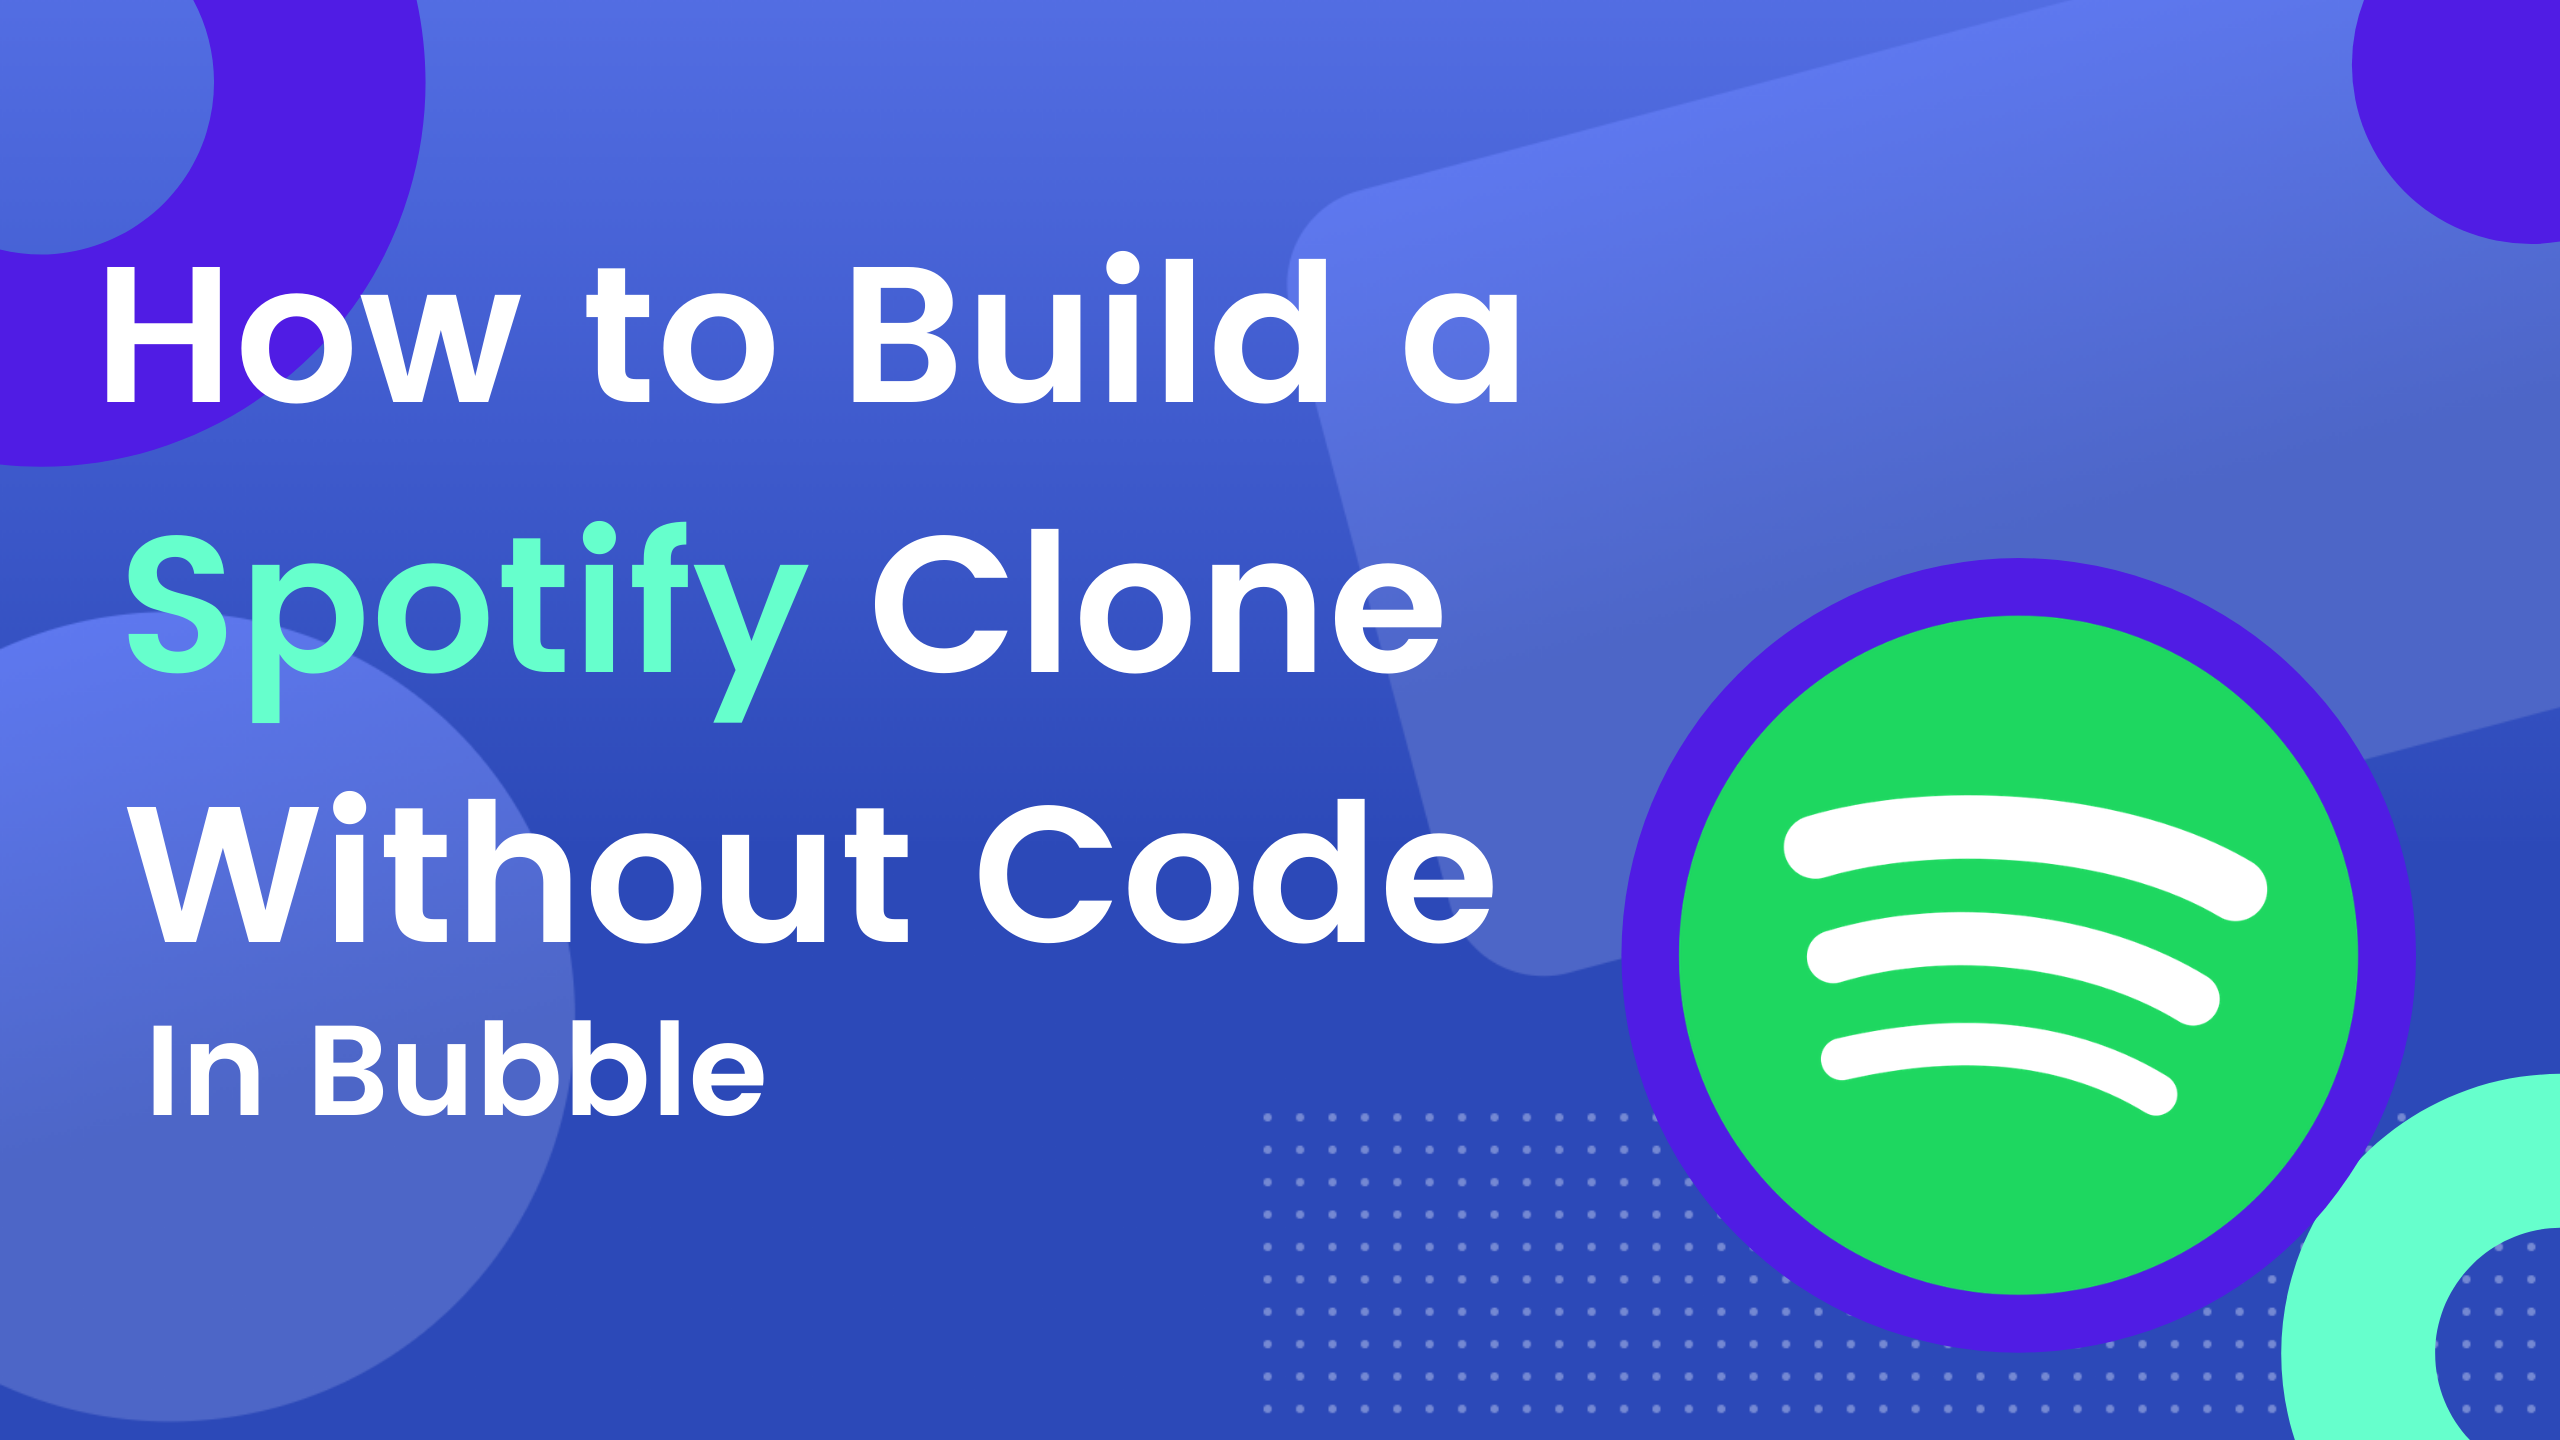 How To Build A Spotify Clone Without Code